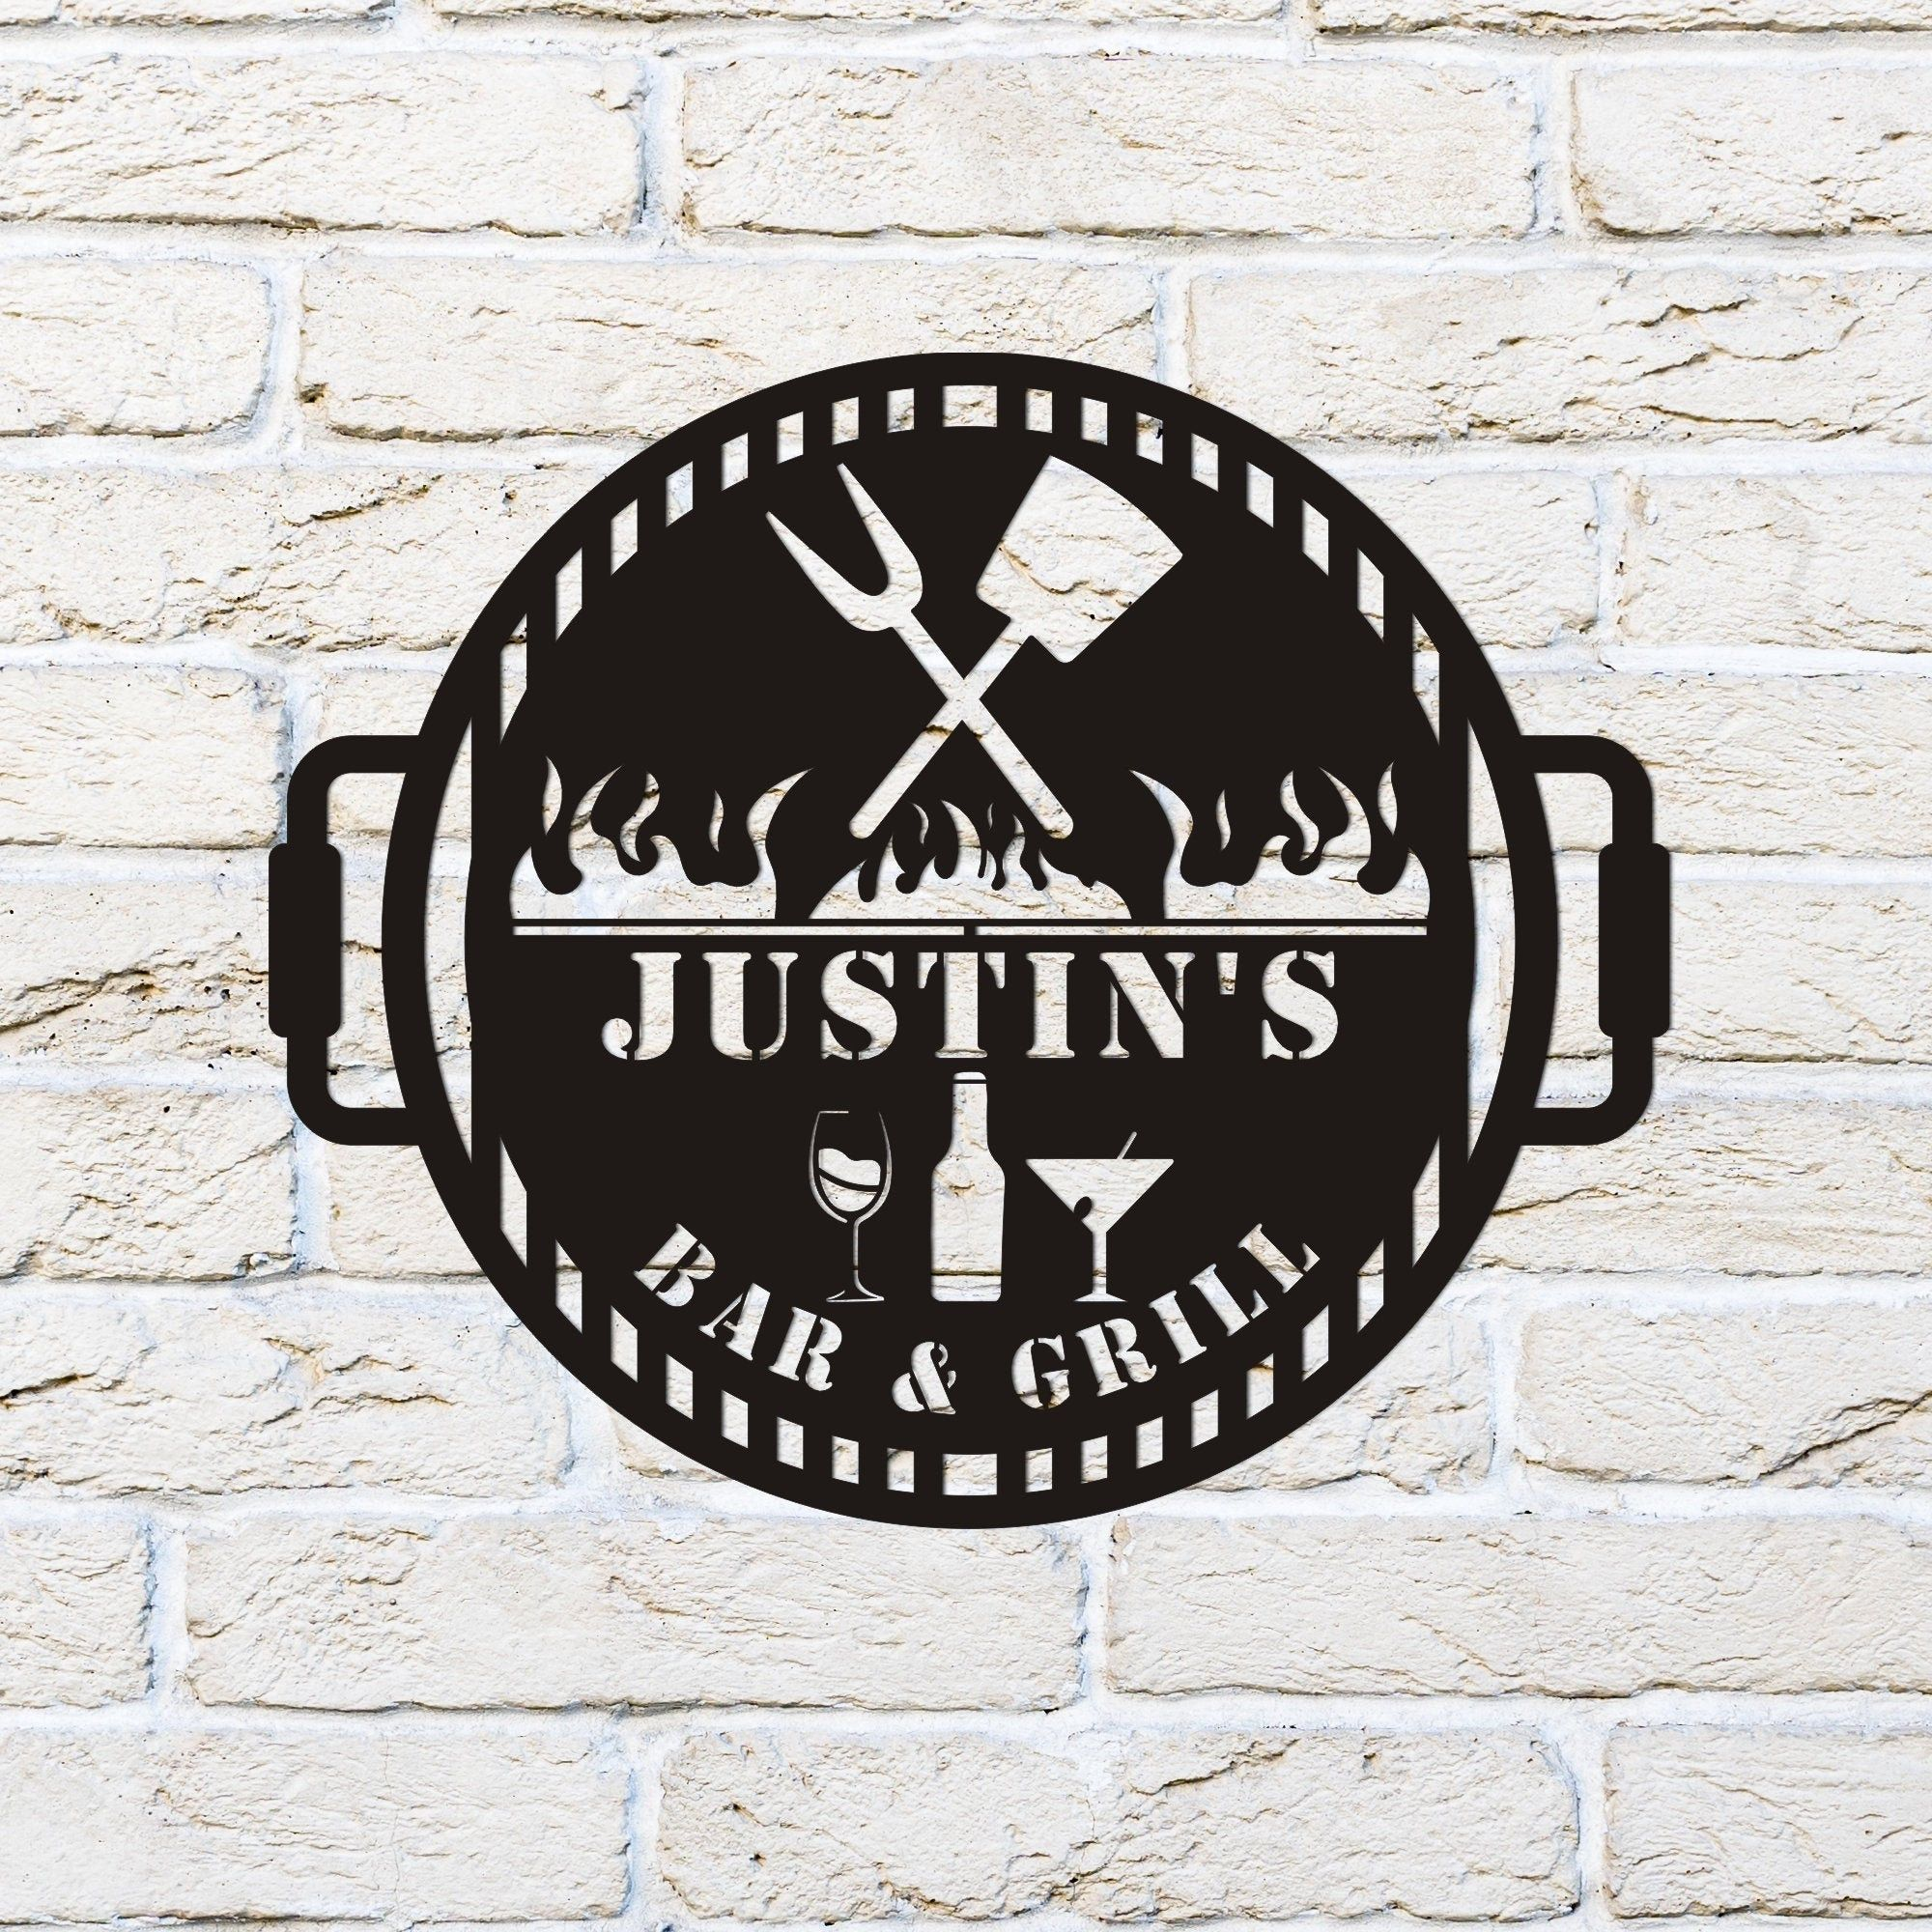 Bar and Grill Custom Metal Sign, Personalized Bar Sign, Whiskey Sign, Metal Family Name Sign, Pub Sign, Pub Wall Decor, Irish pub